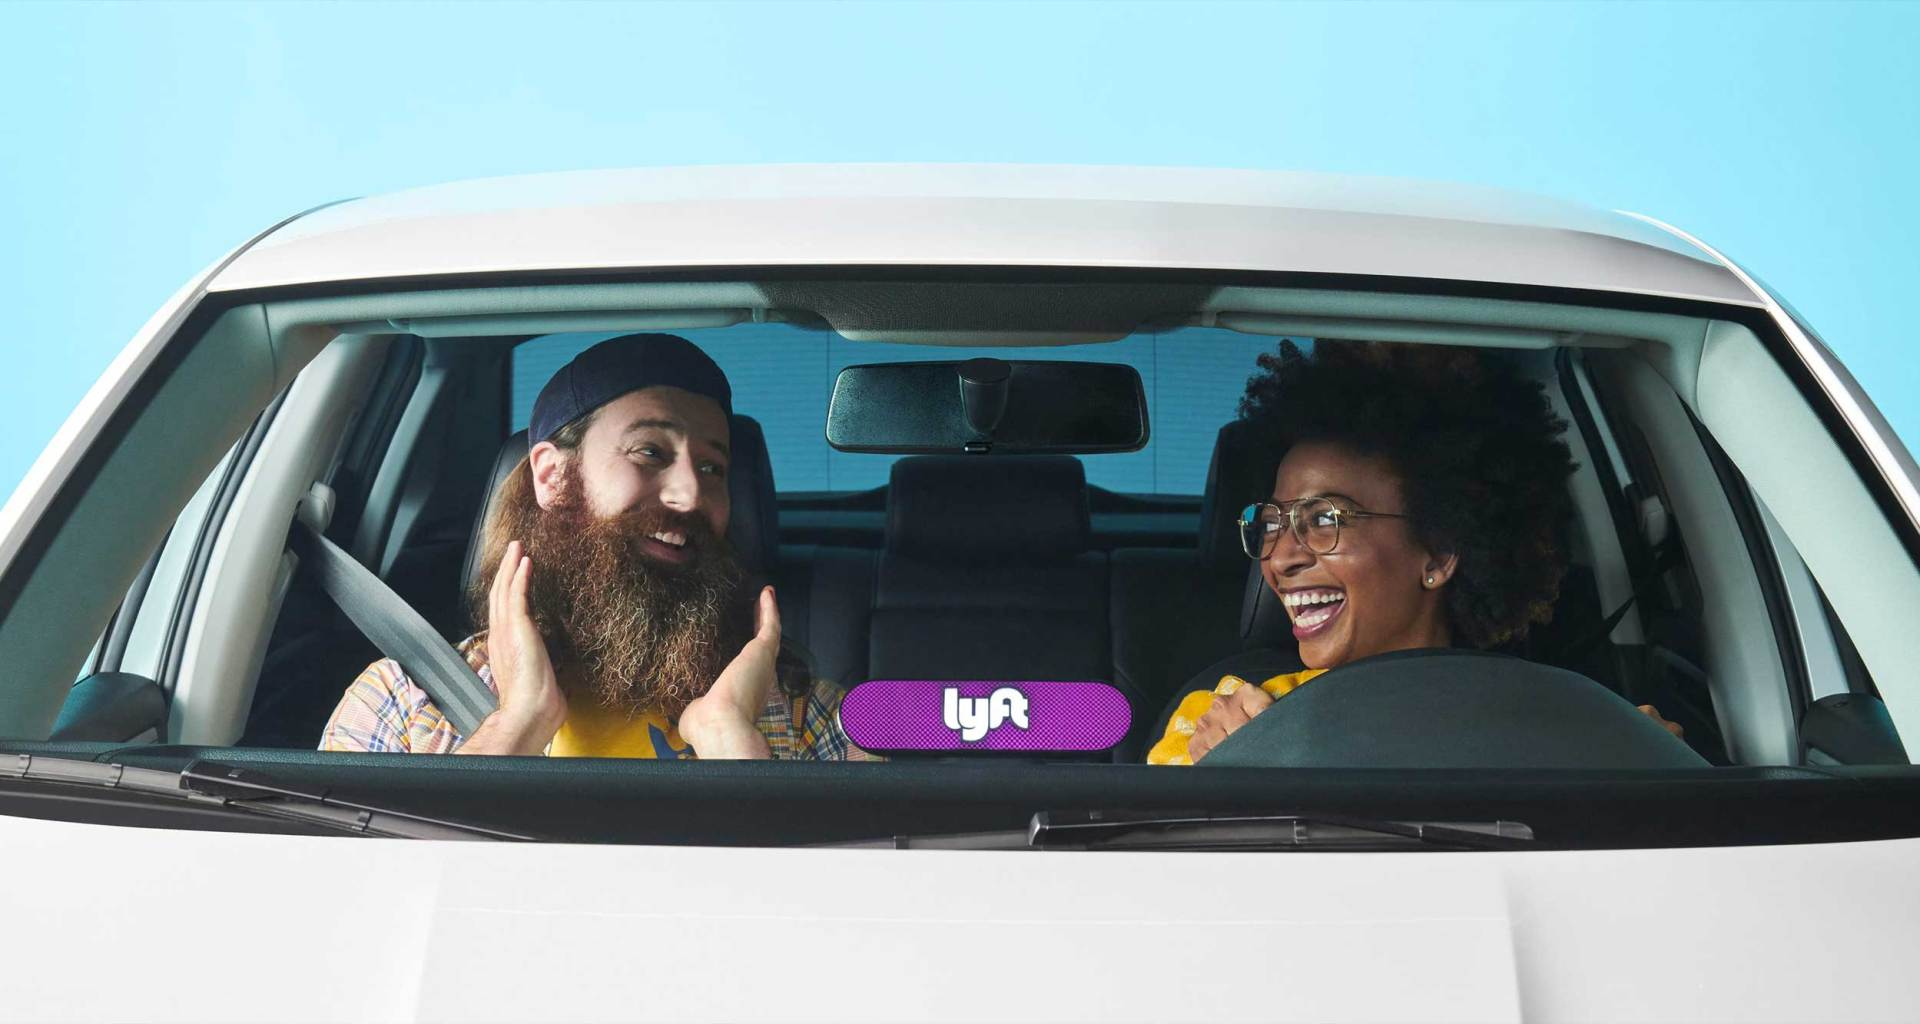 Man and woman in a white car with a illuminated Lyft sign in the window.